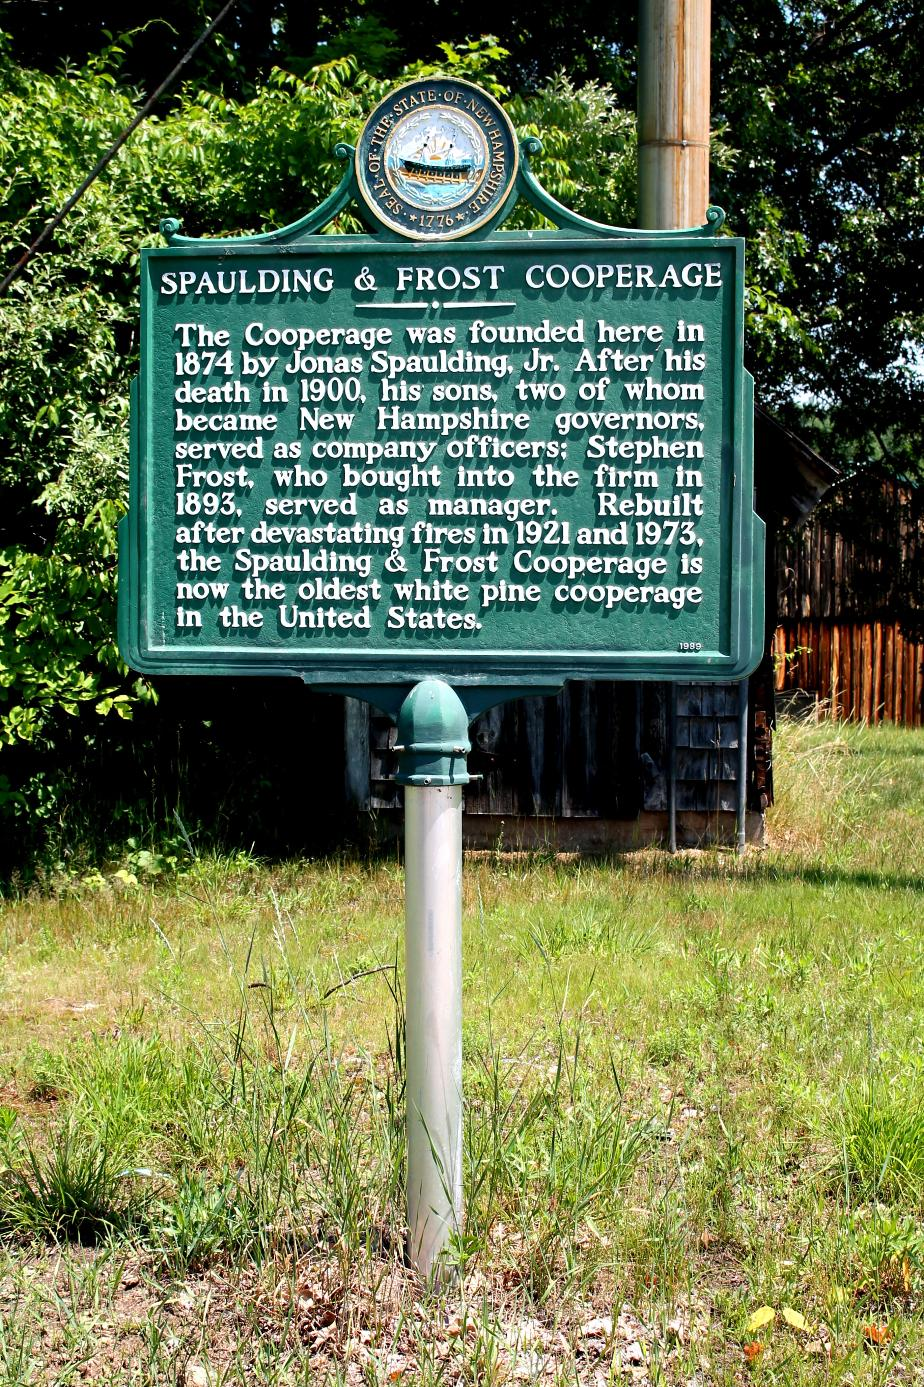 Spaulding & Frost Cooperage - Fremont New Hampshire